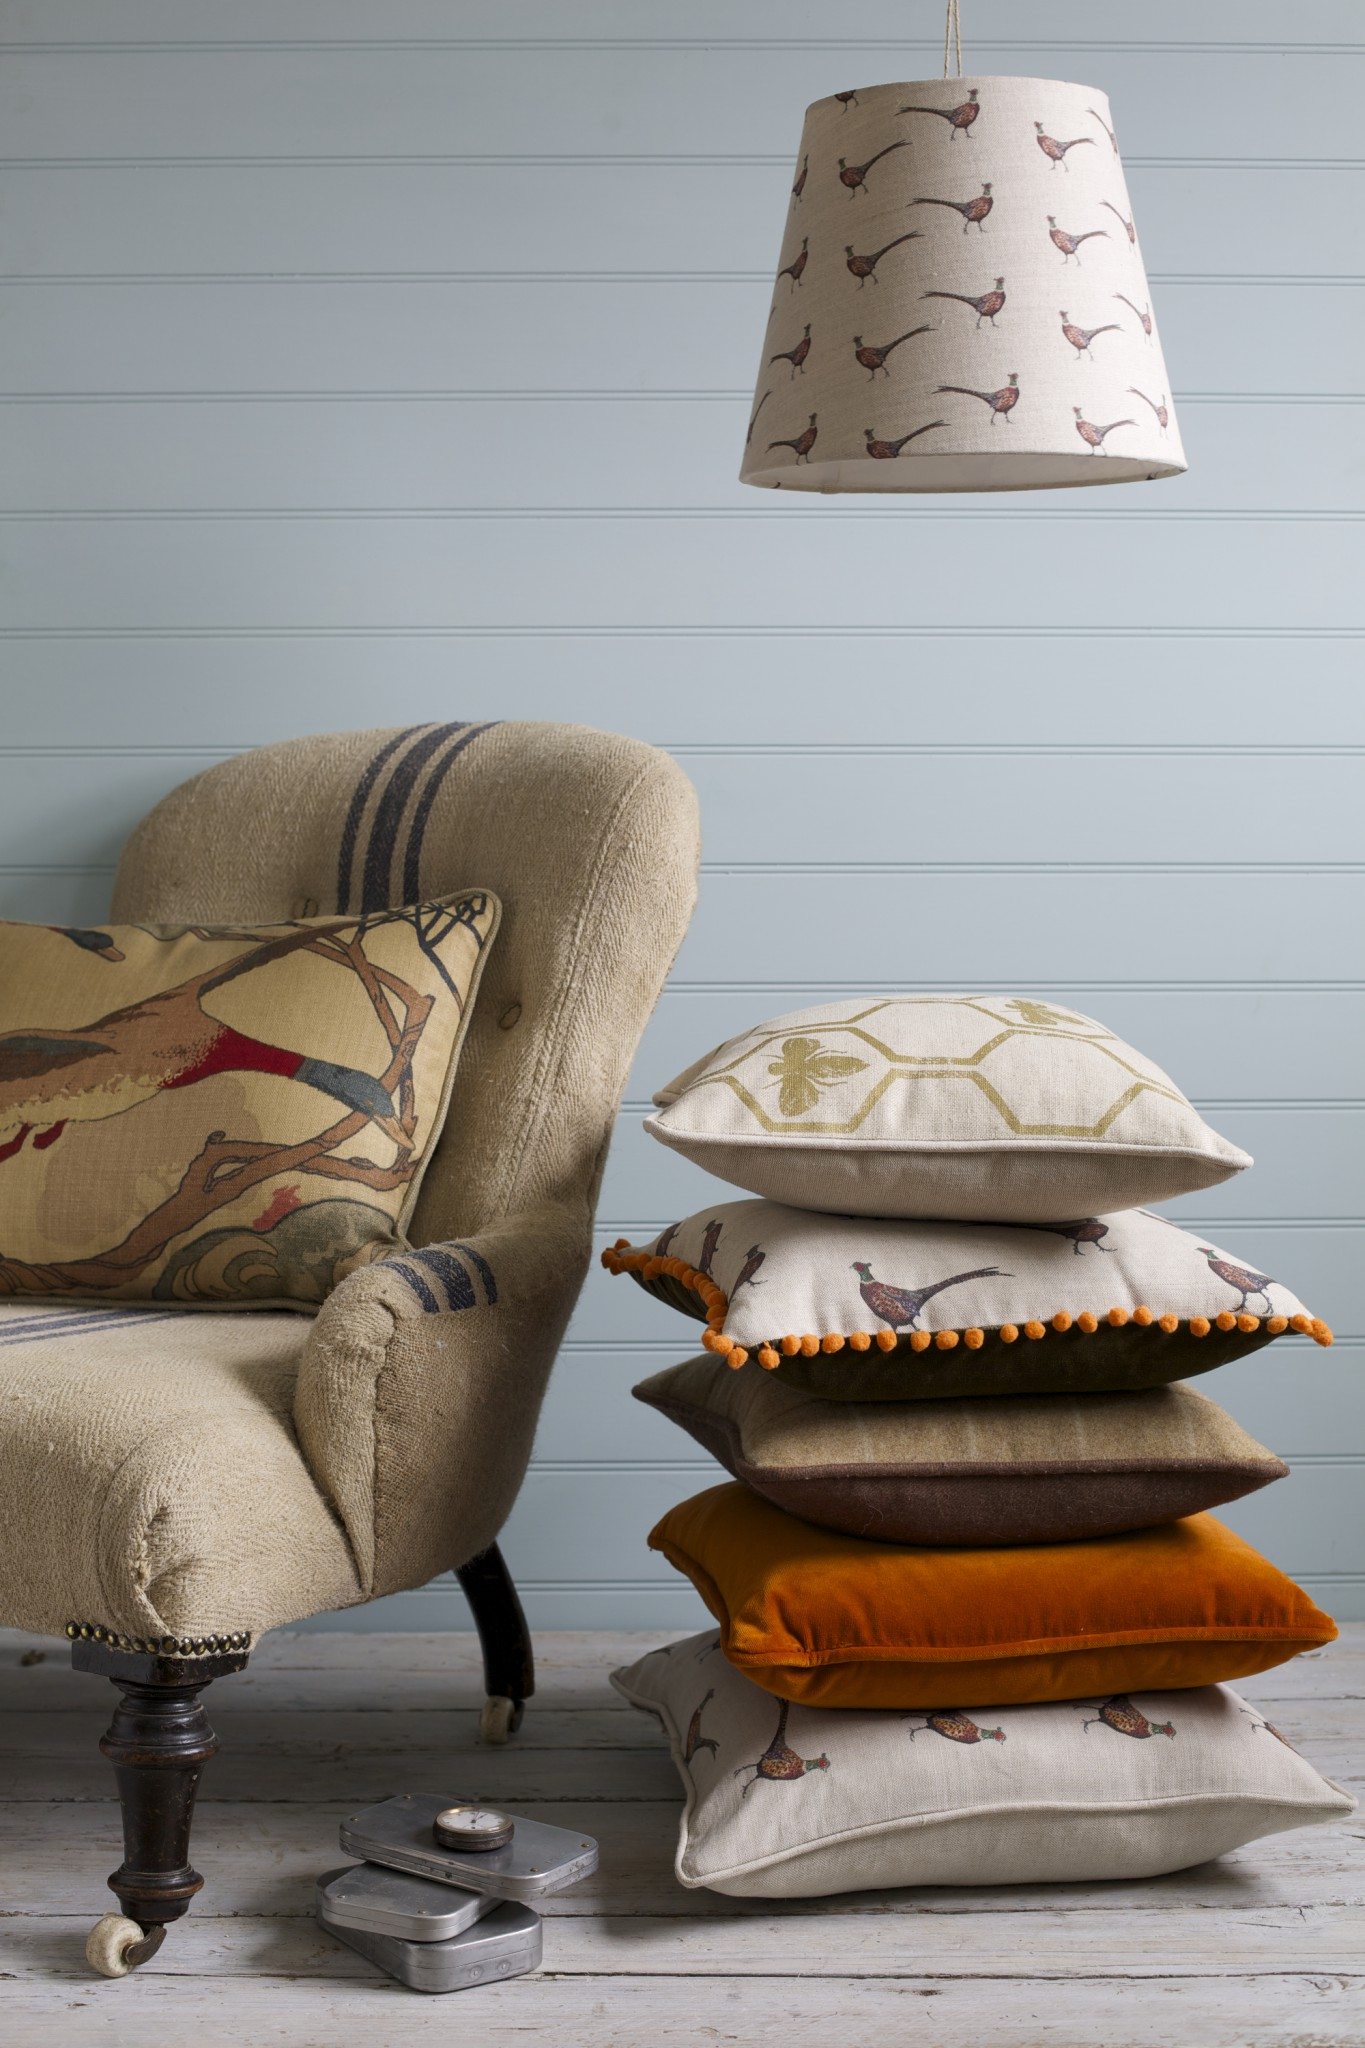 Bespoke Cushions & Lampshades by Rascal & Roses